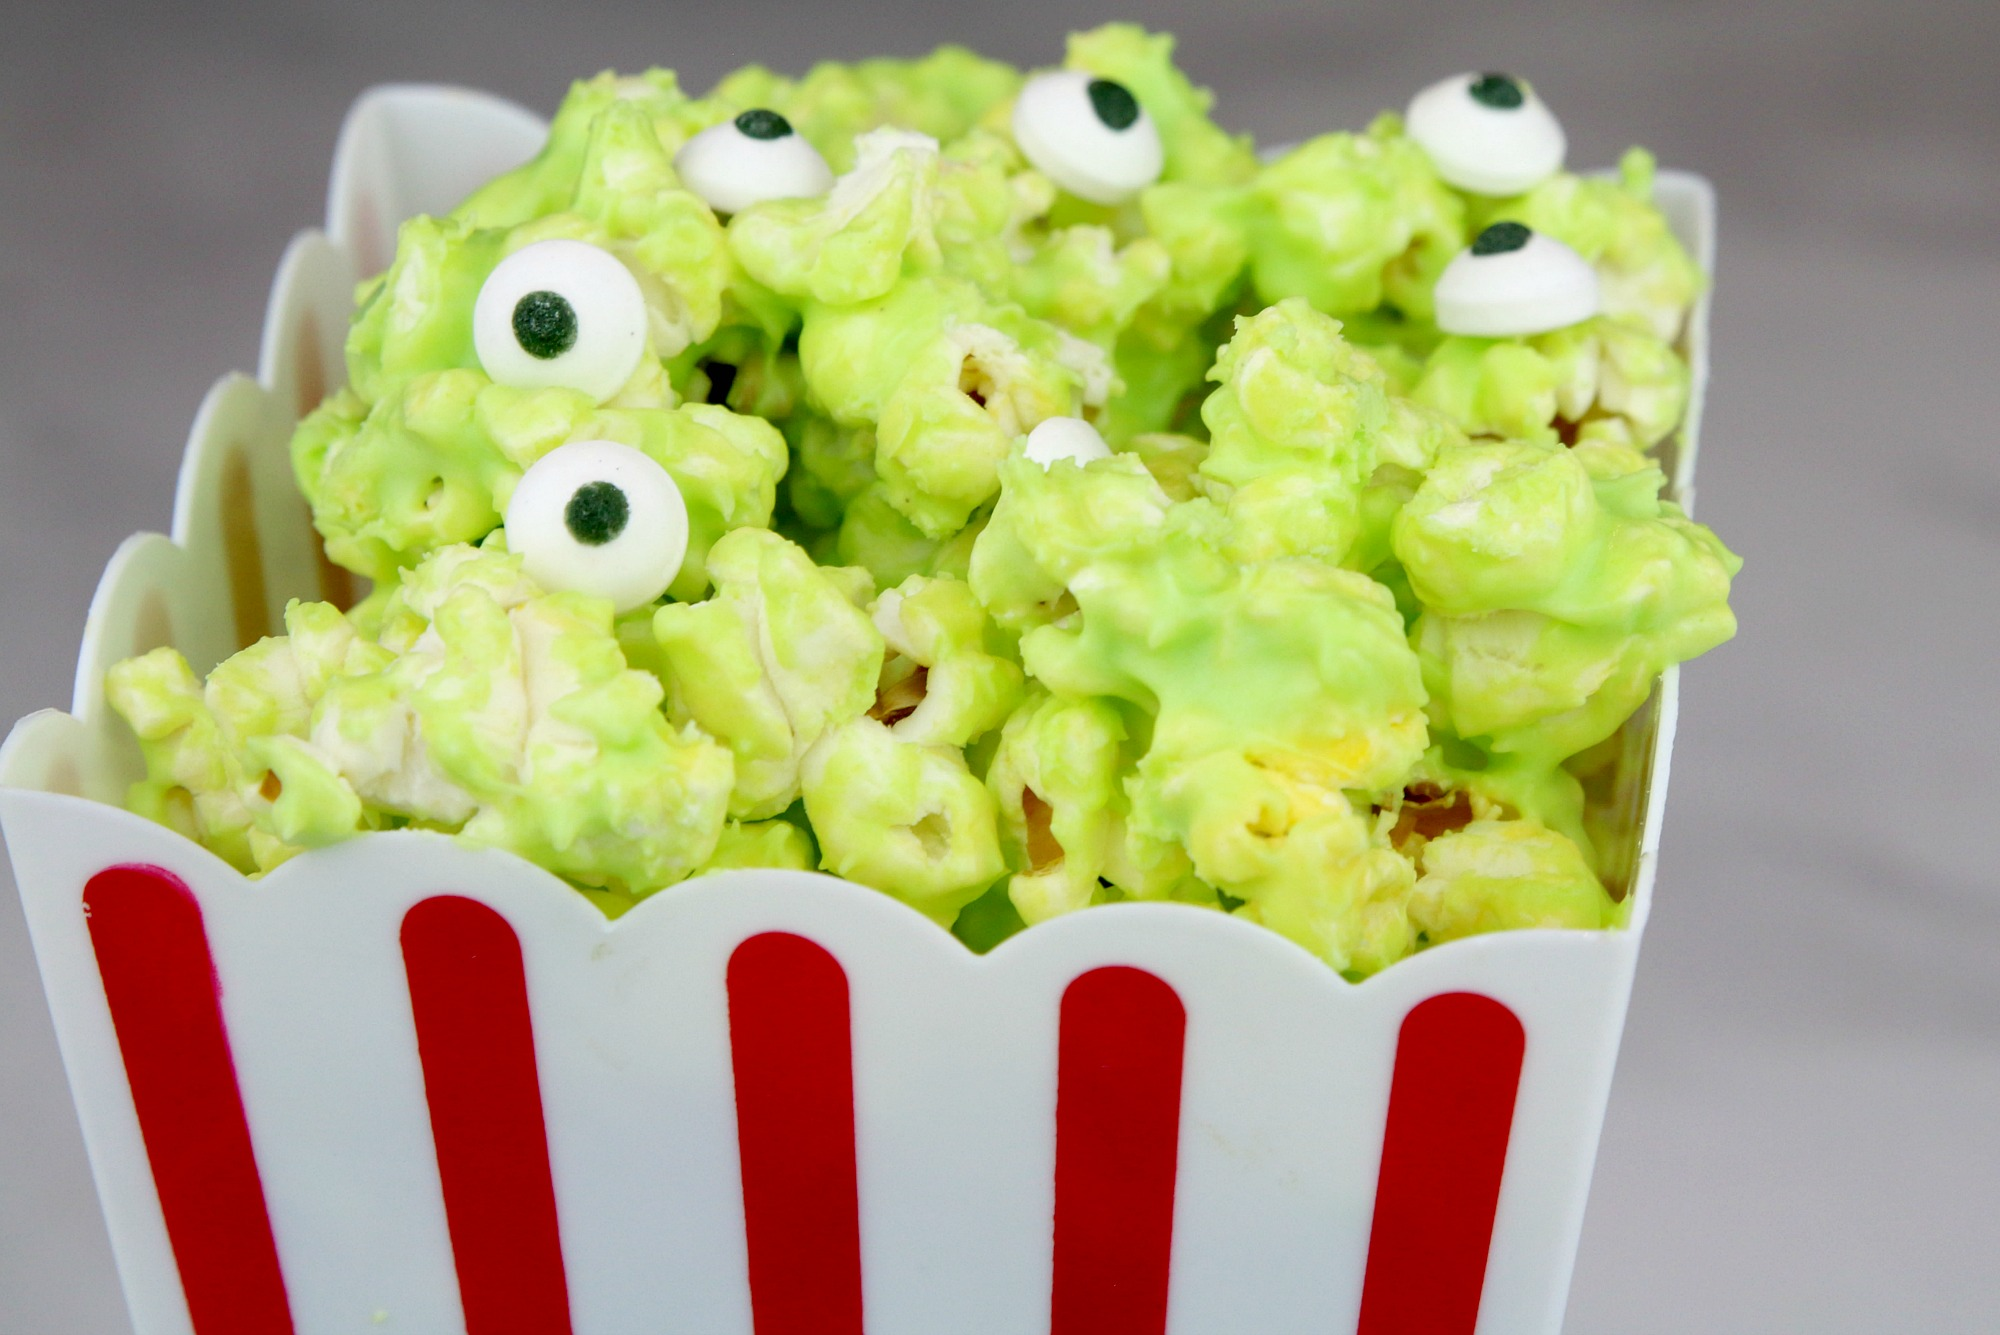 green chocolate on popcorn